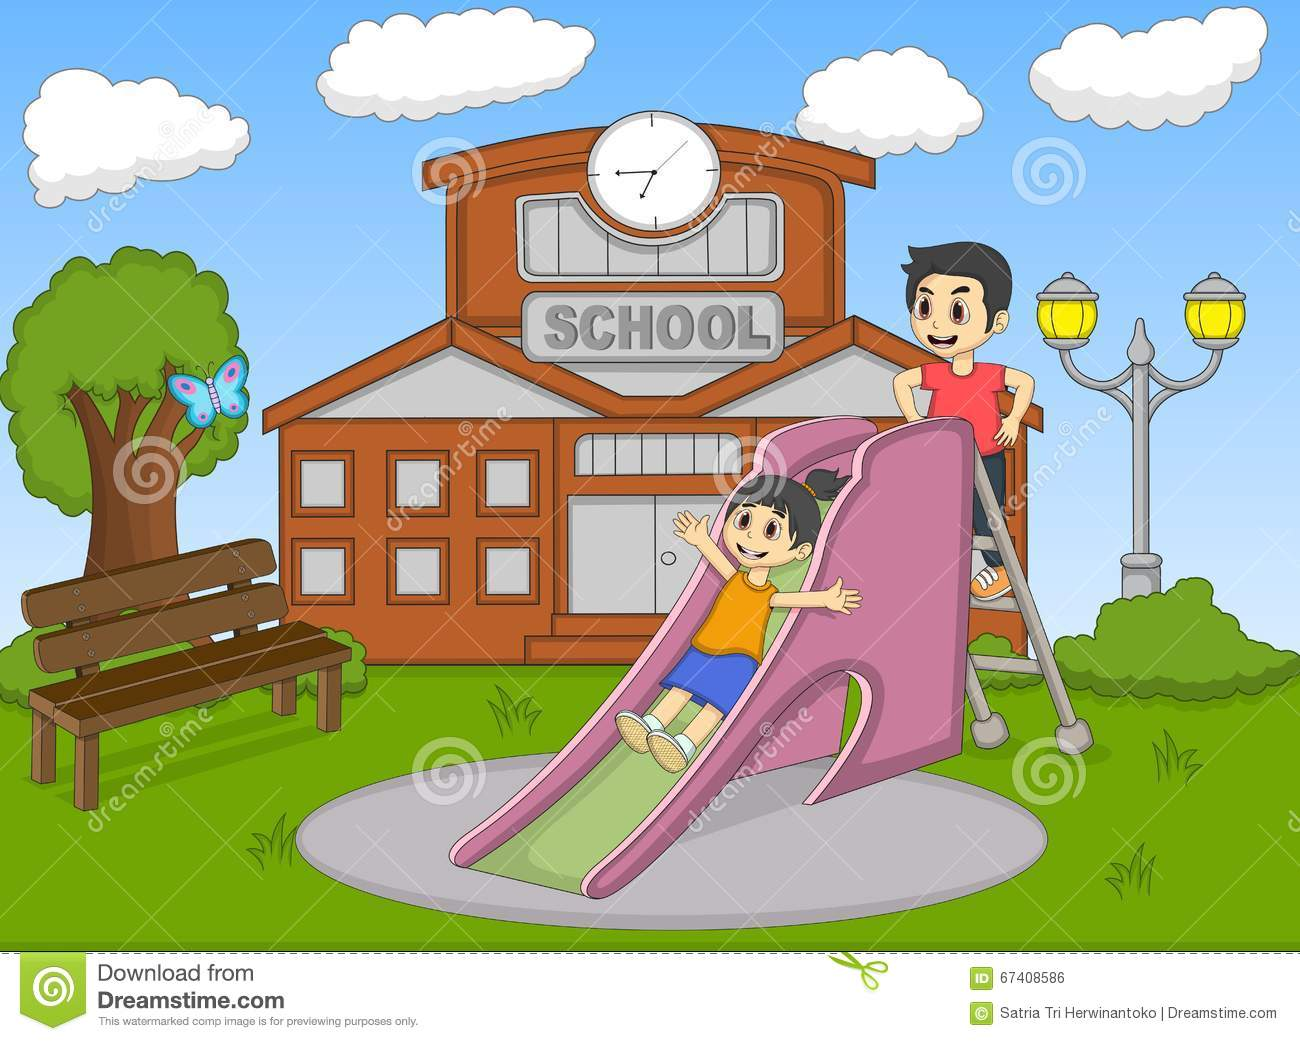 Children Playing Slide On The School Cartoon Stock Vector ...